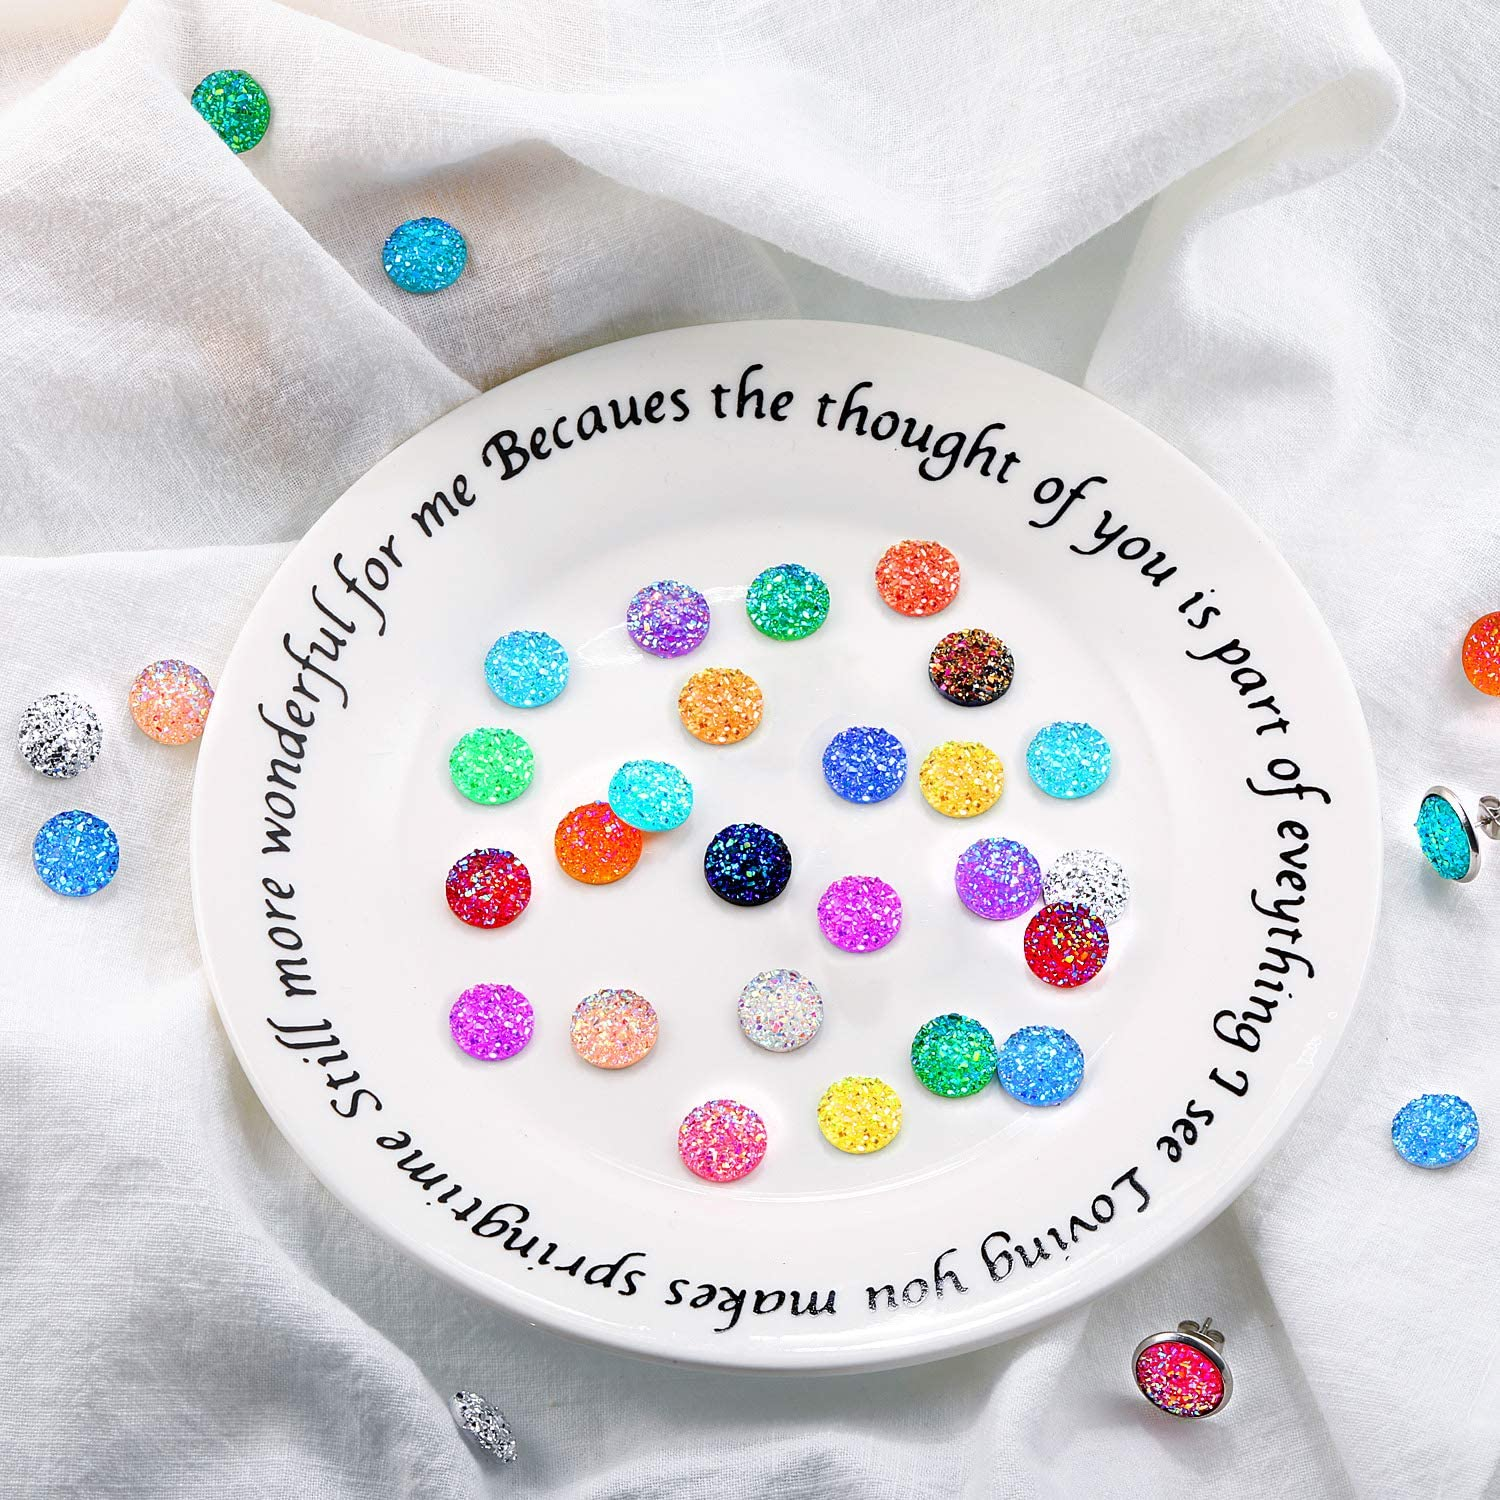 120 Pieces Druzy Resin Cabochons 20 Pieces Stainless Steel Earring Wire Hooks Blanks 2 Pieces Necklace Chains 10 Pieces Bracelet Bezel Trays with Open Jump Rings for Jewelry Making?12mm